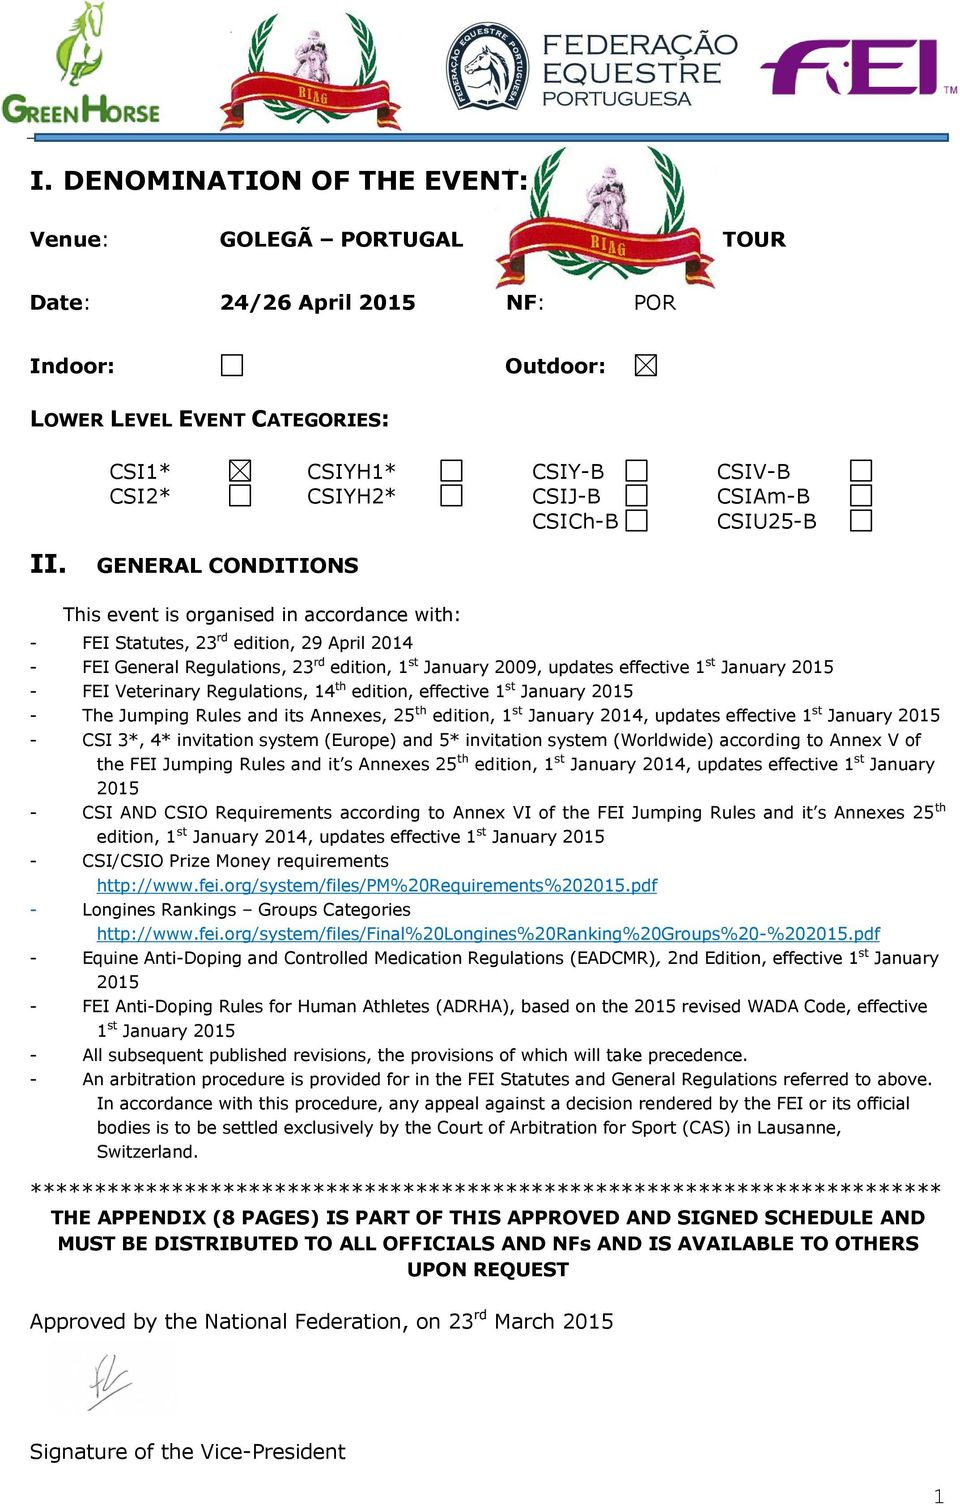 Regulations, 23 rd edition, 1 st January 2009, updates effective 1 st January 2015 - FEI Veterinary Regulations, 14 th edition, effective 1 st January 2015 - The Jumping Rules and its Annexes, 25 th